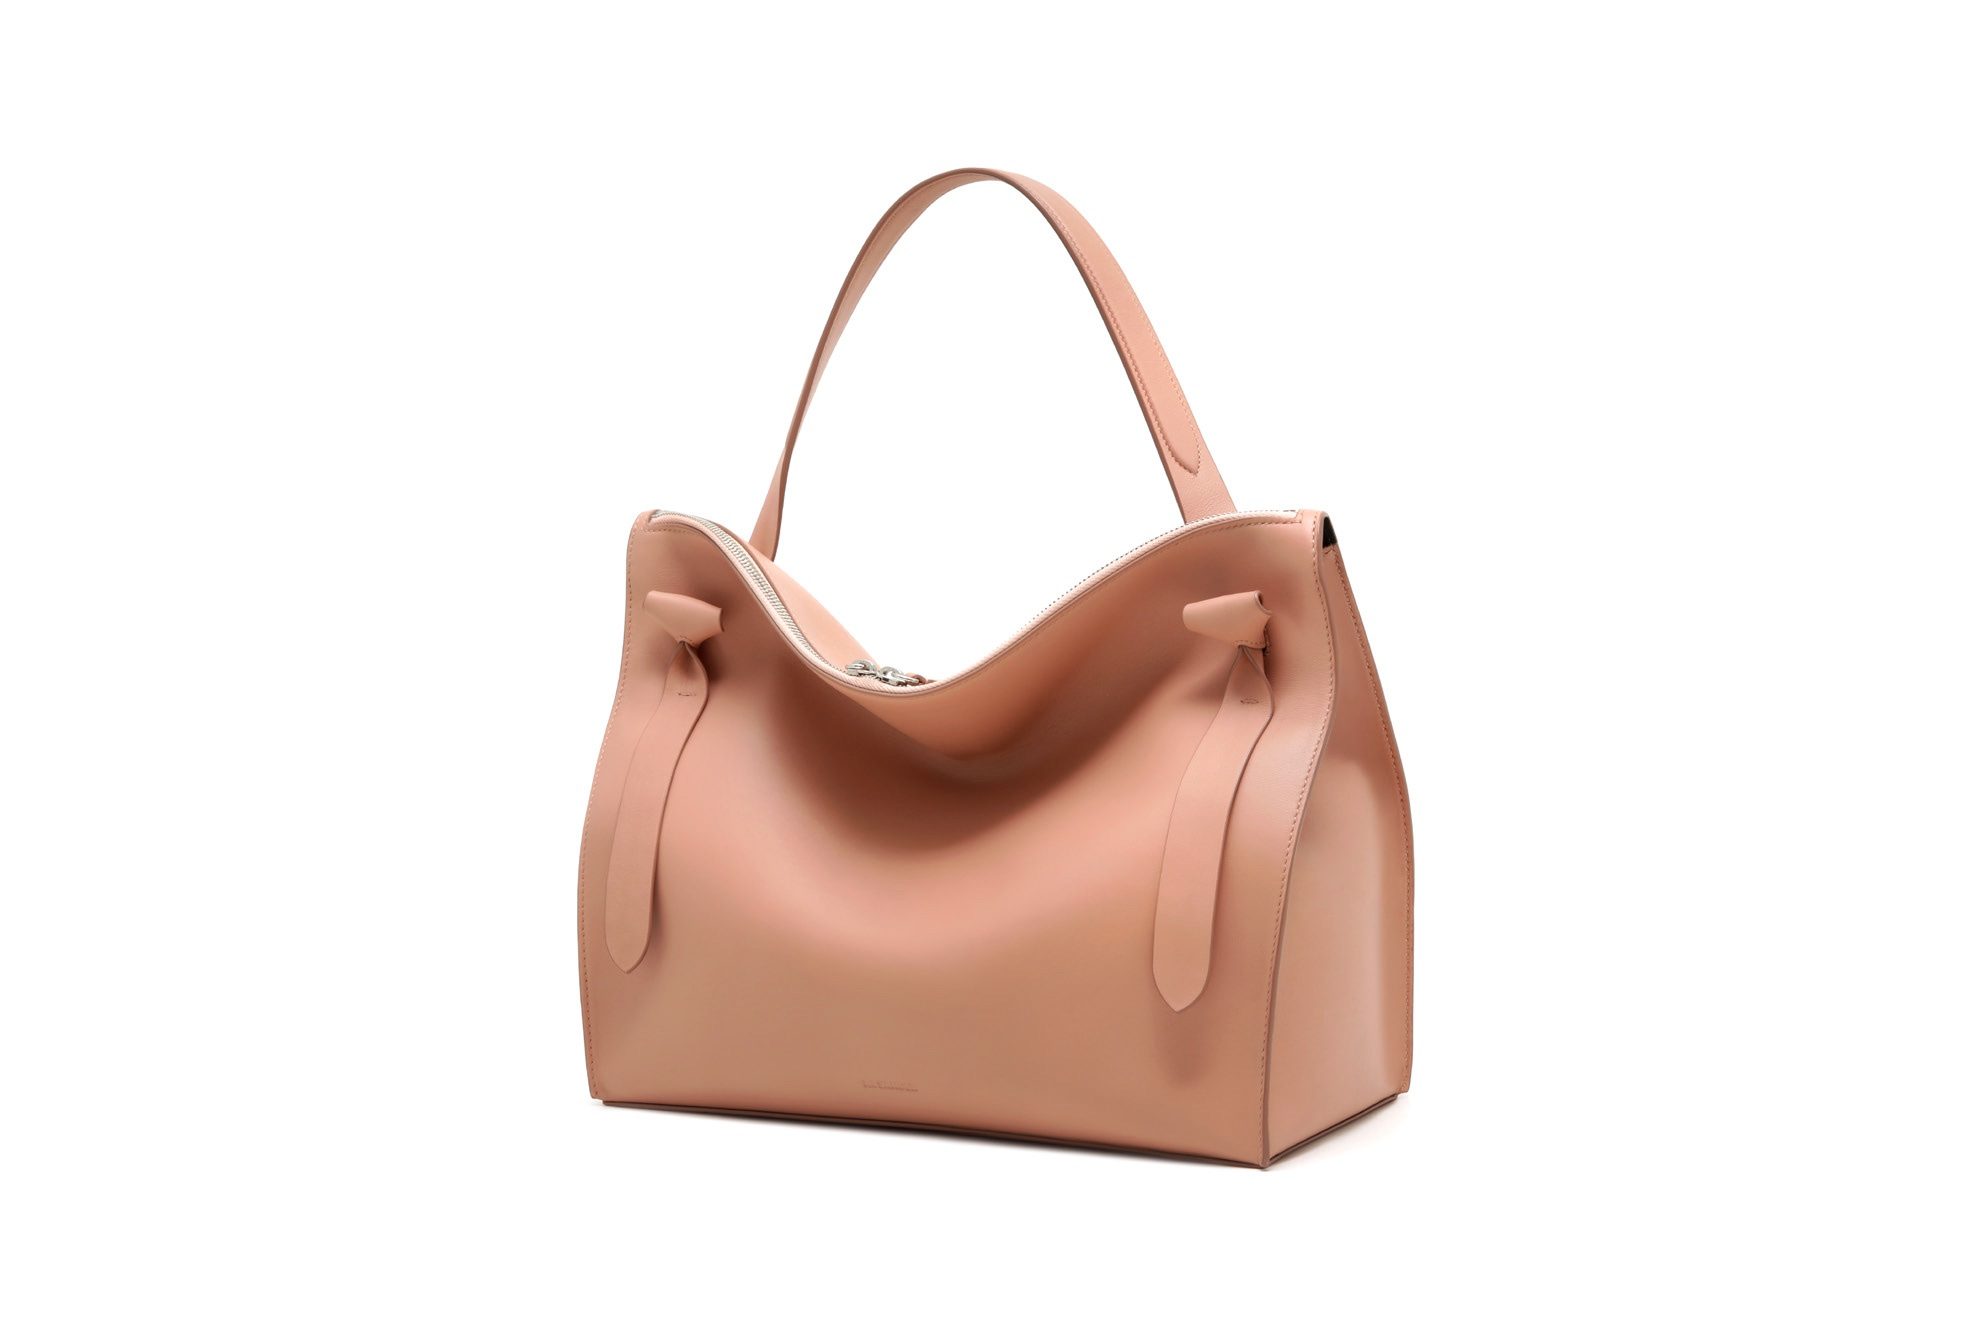 Jil Sander Handbag Women Handbags On Yoox